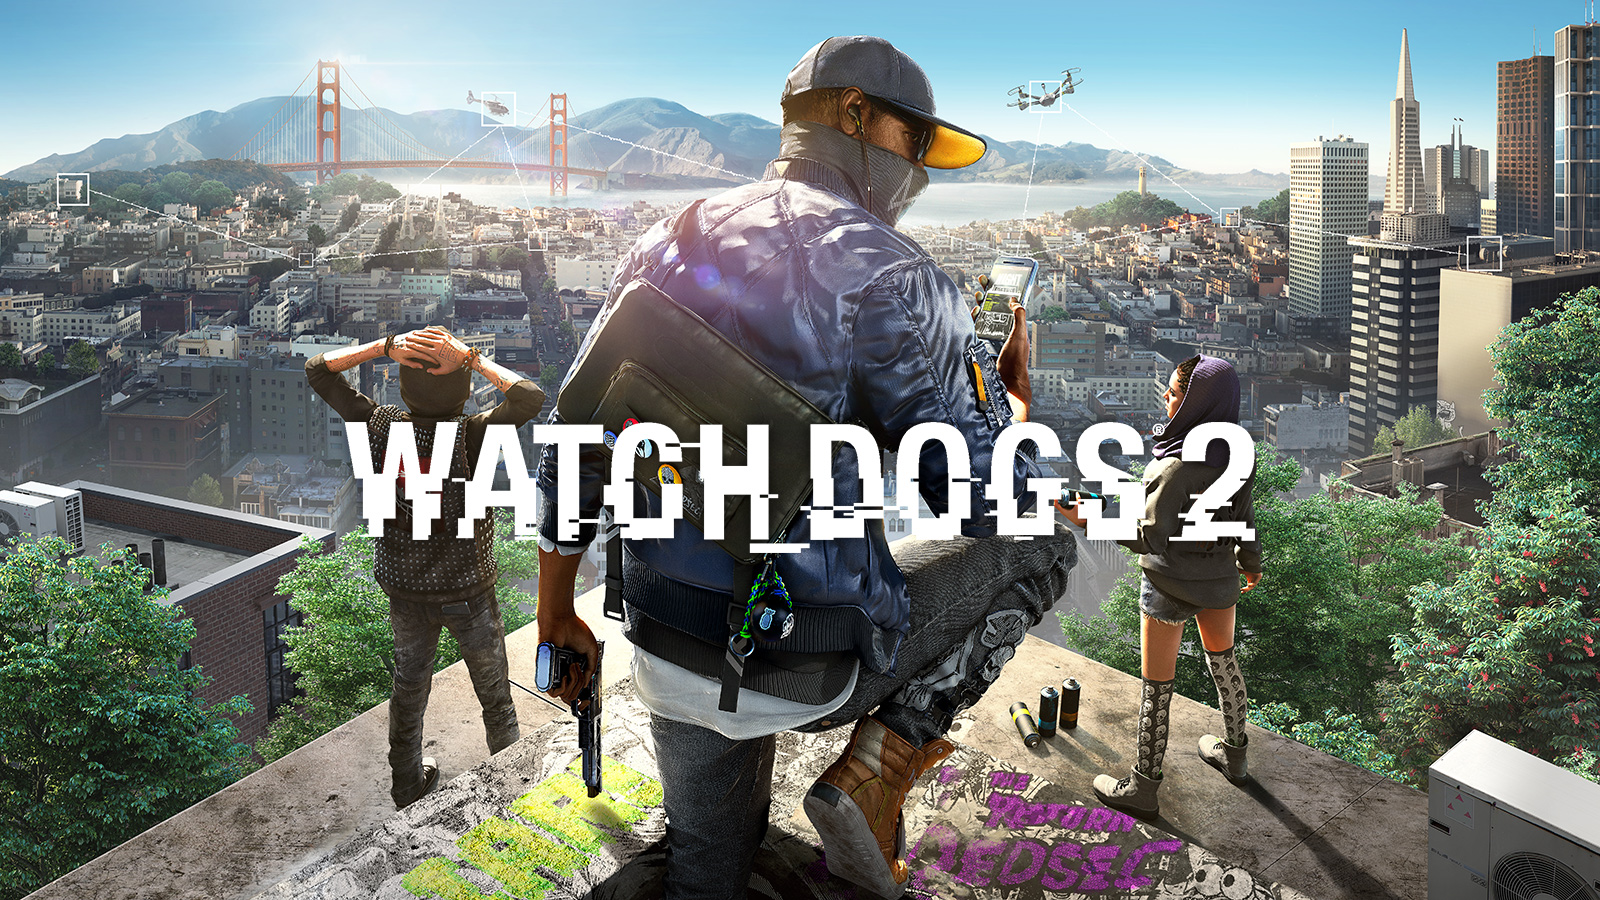 https://media.playstation.com/is/image/SCEA/watch-dogs-2-listing-thumb-01-ps4-us-06jun16?$Icon$